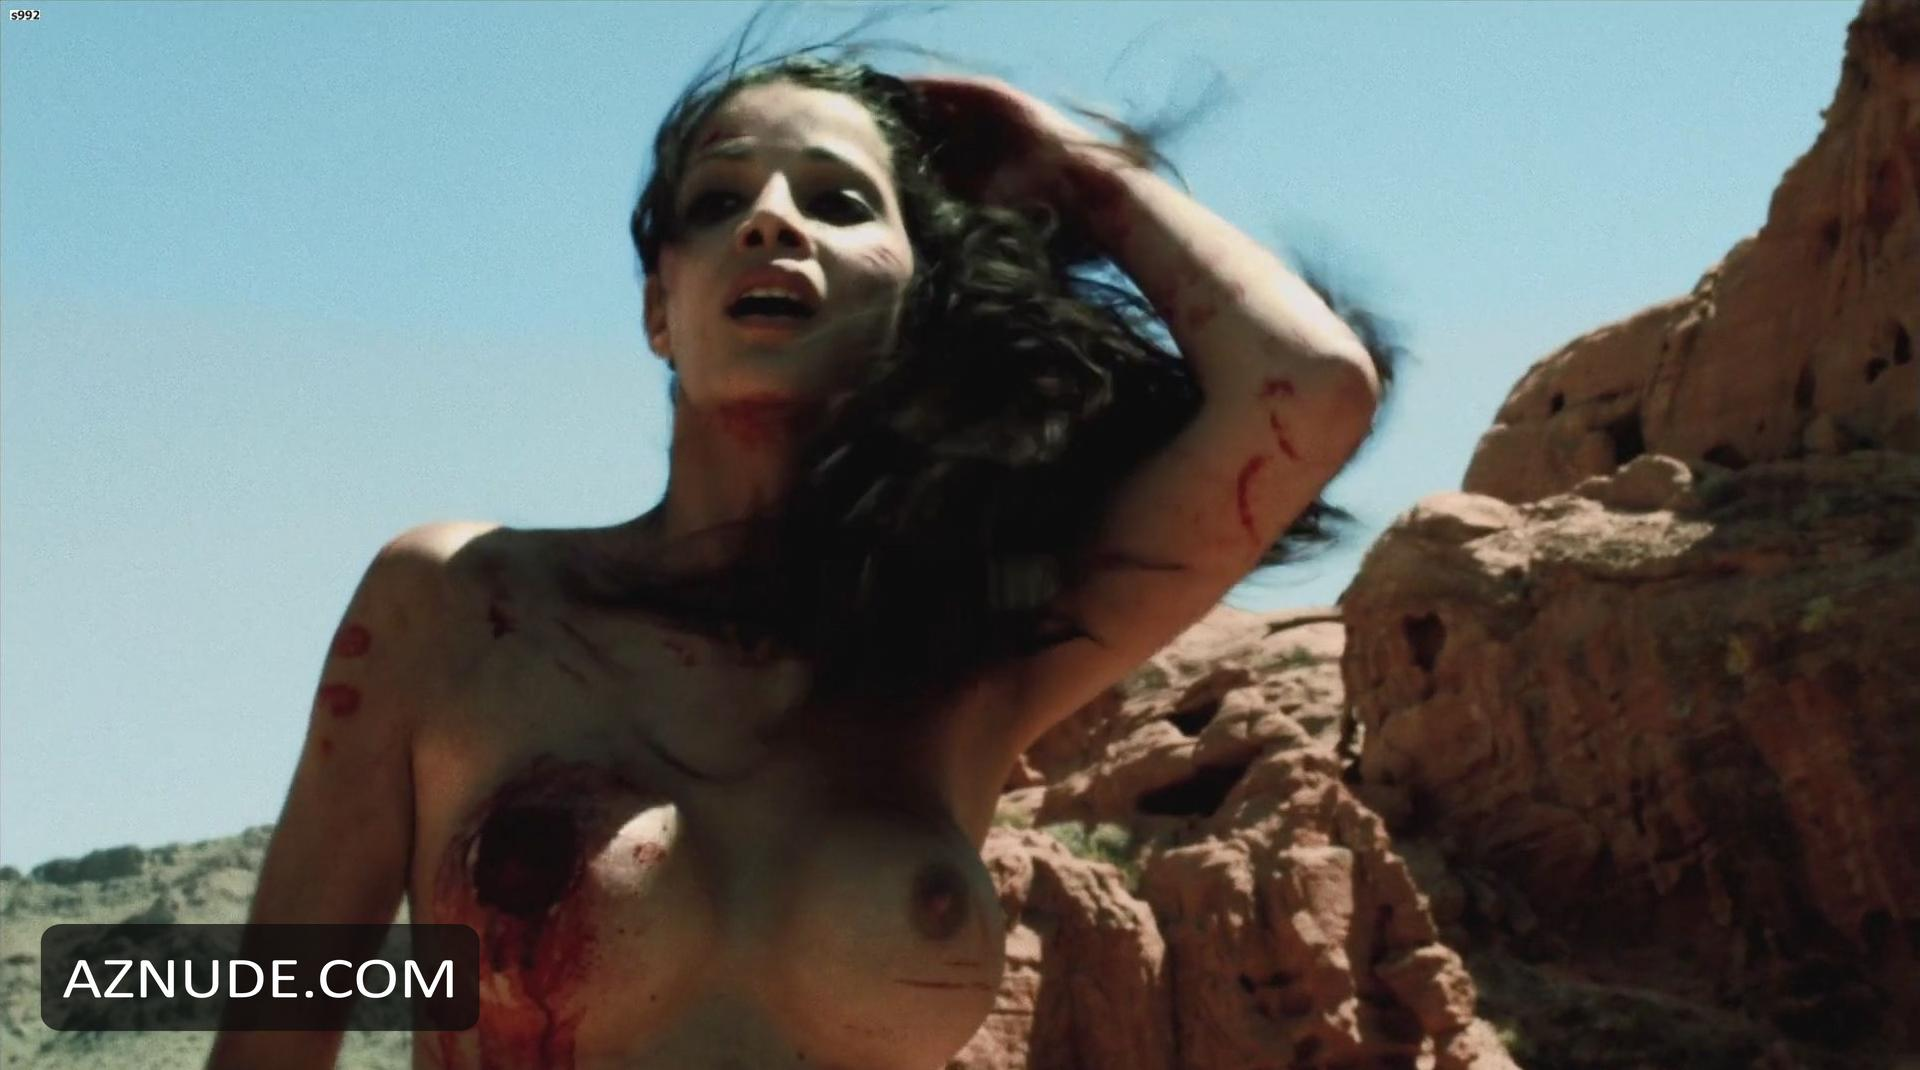 Nude actress from movie snake girl very